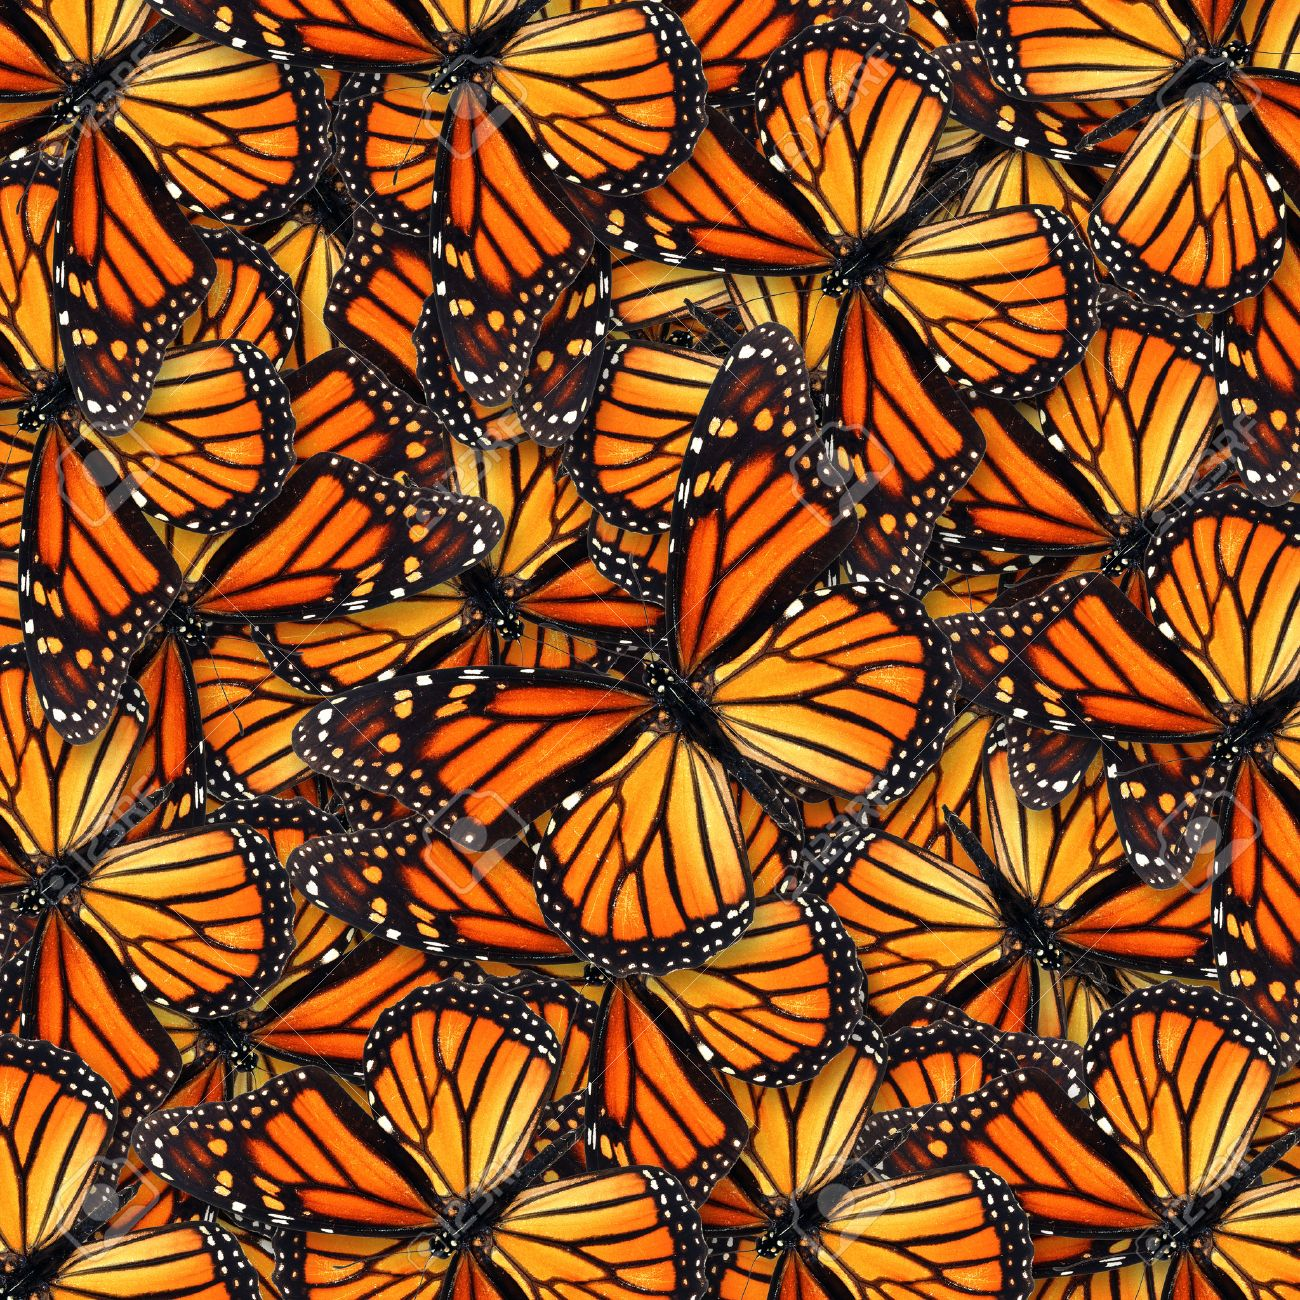 Beautiful monarch butterfly for background or texture - 33317635